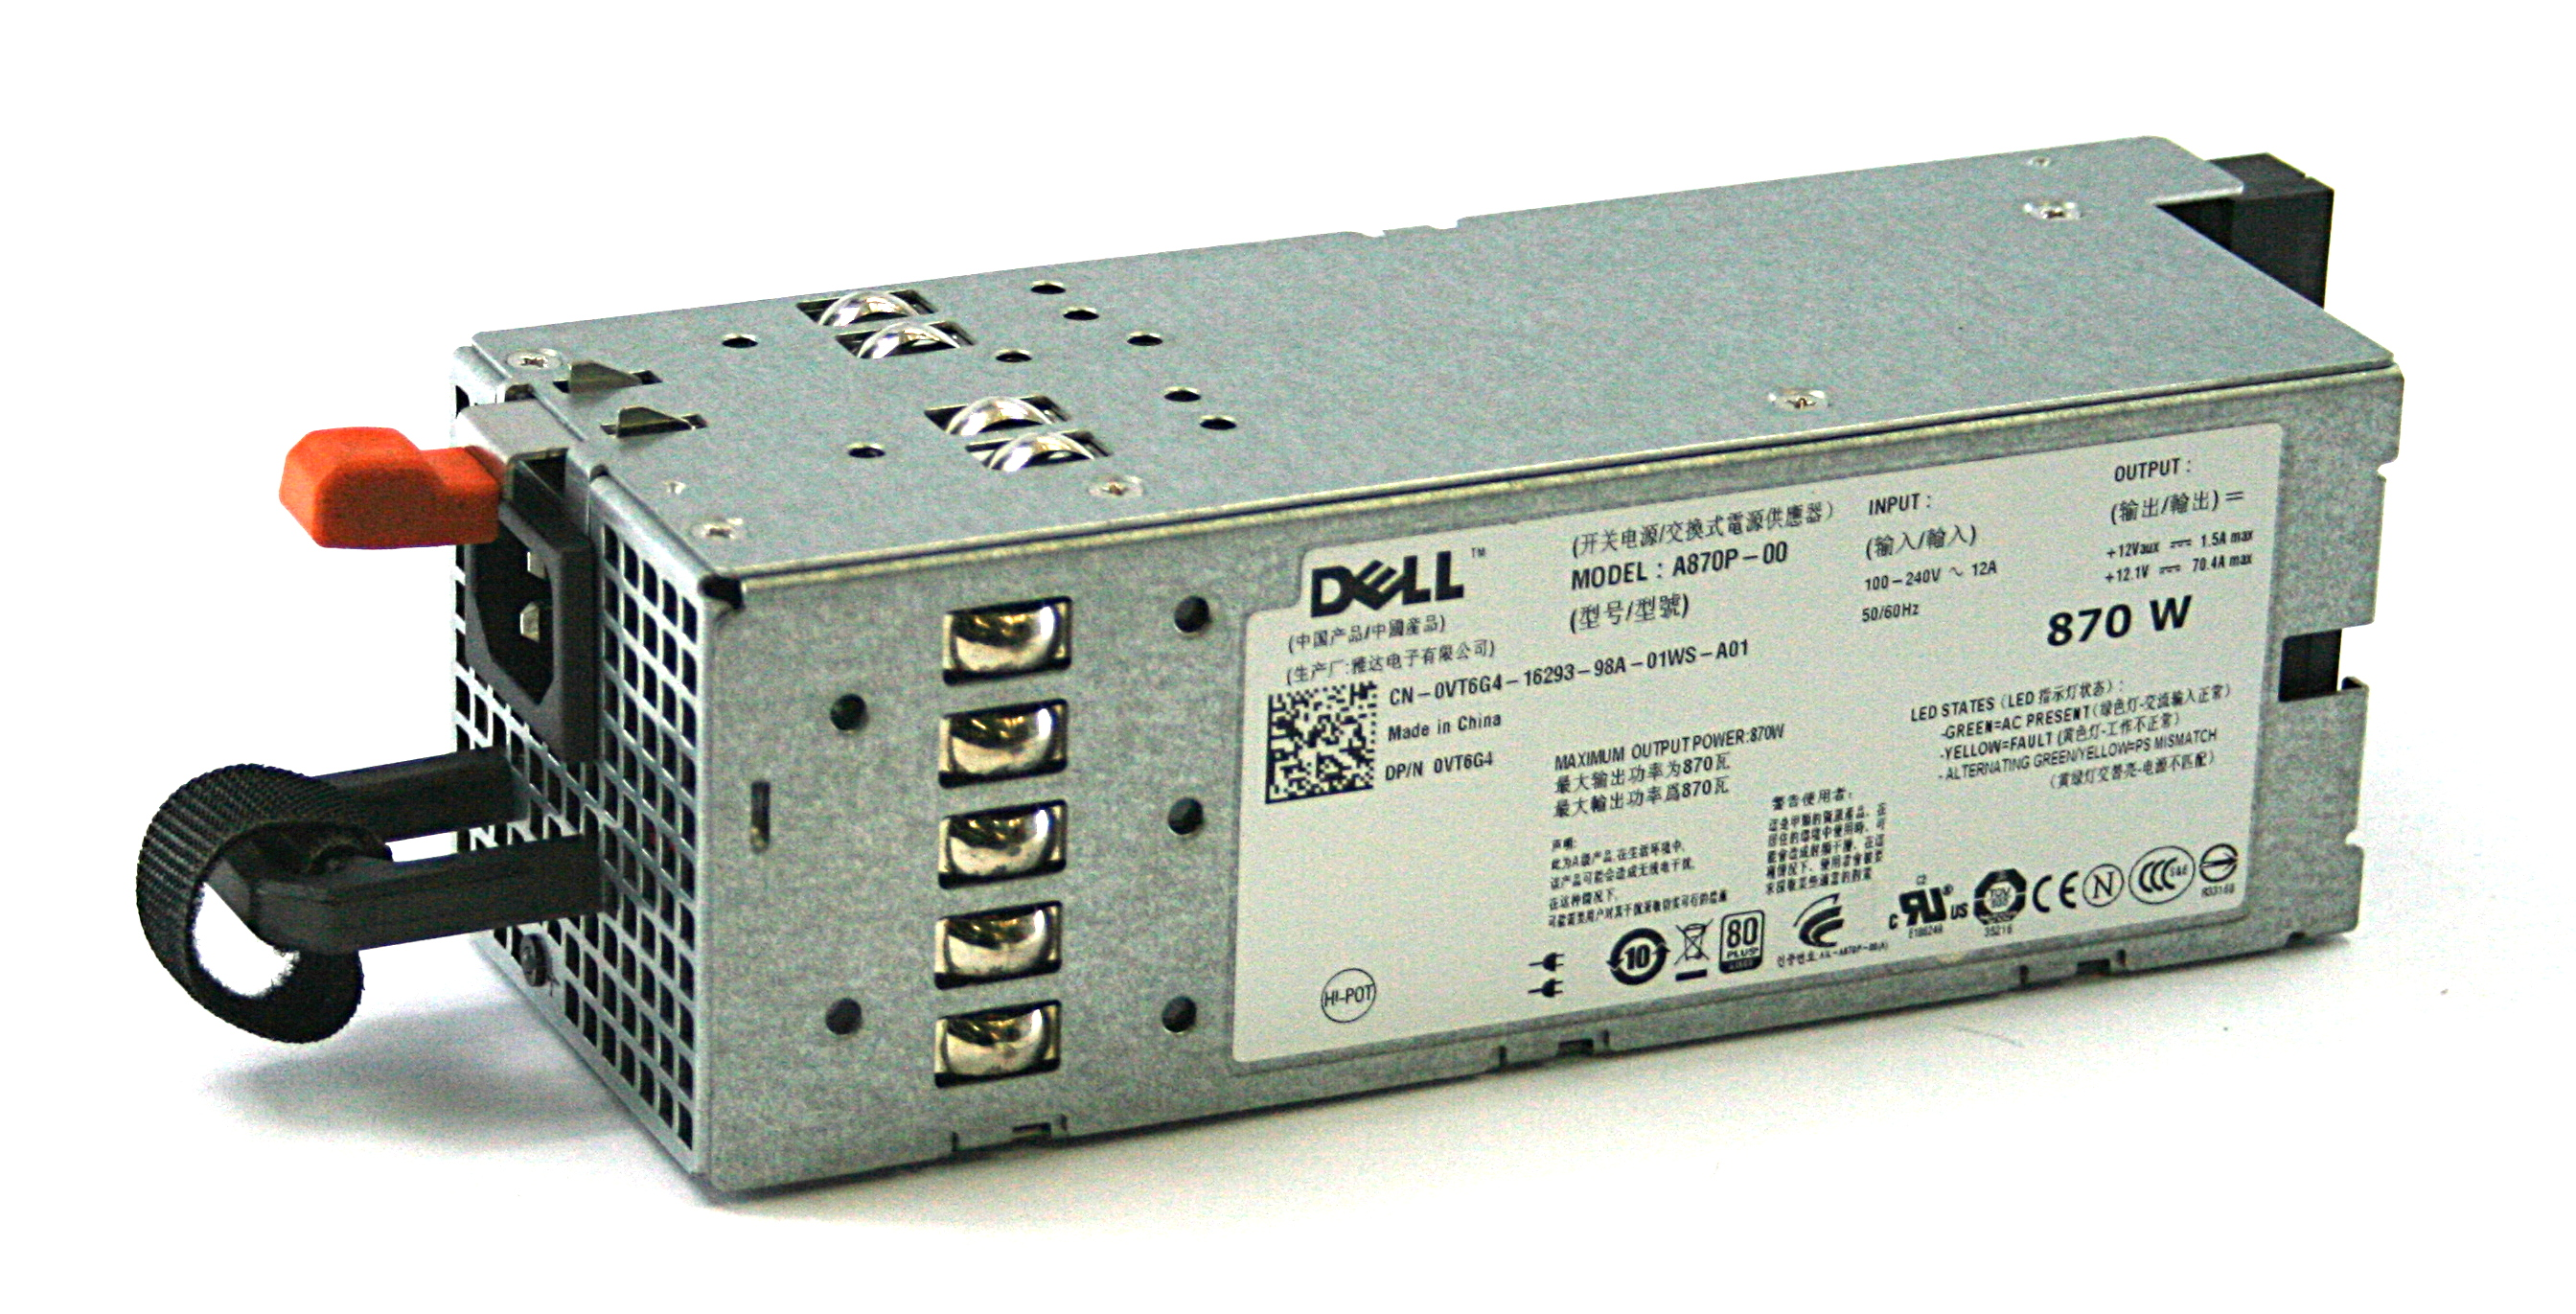 Dell VT6G4 Poweredge R710 870W Server Power Supply A870P-00